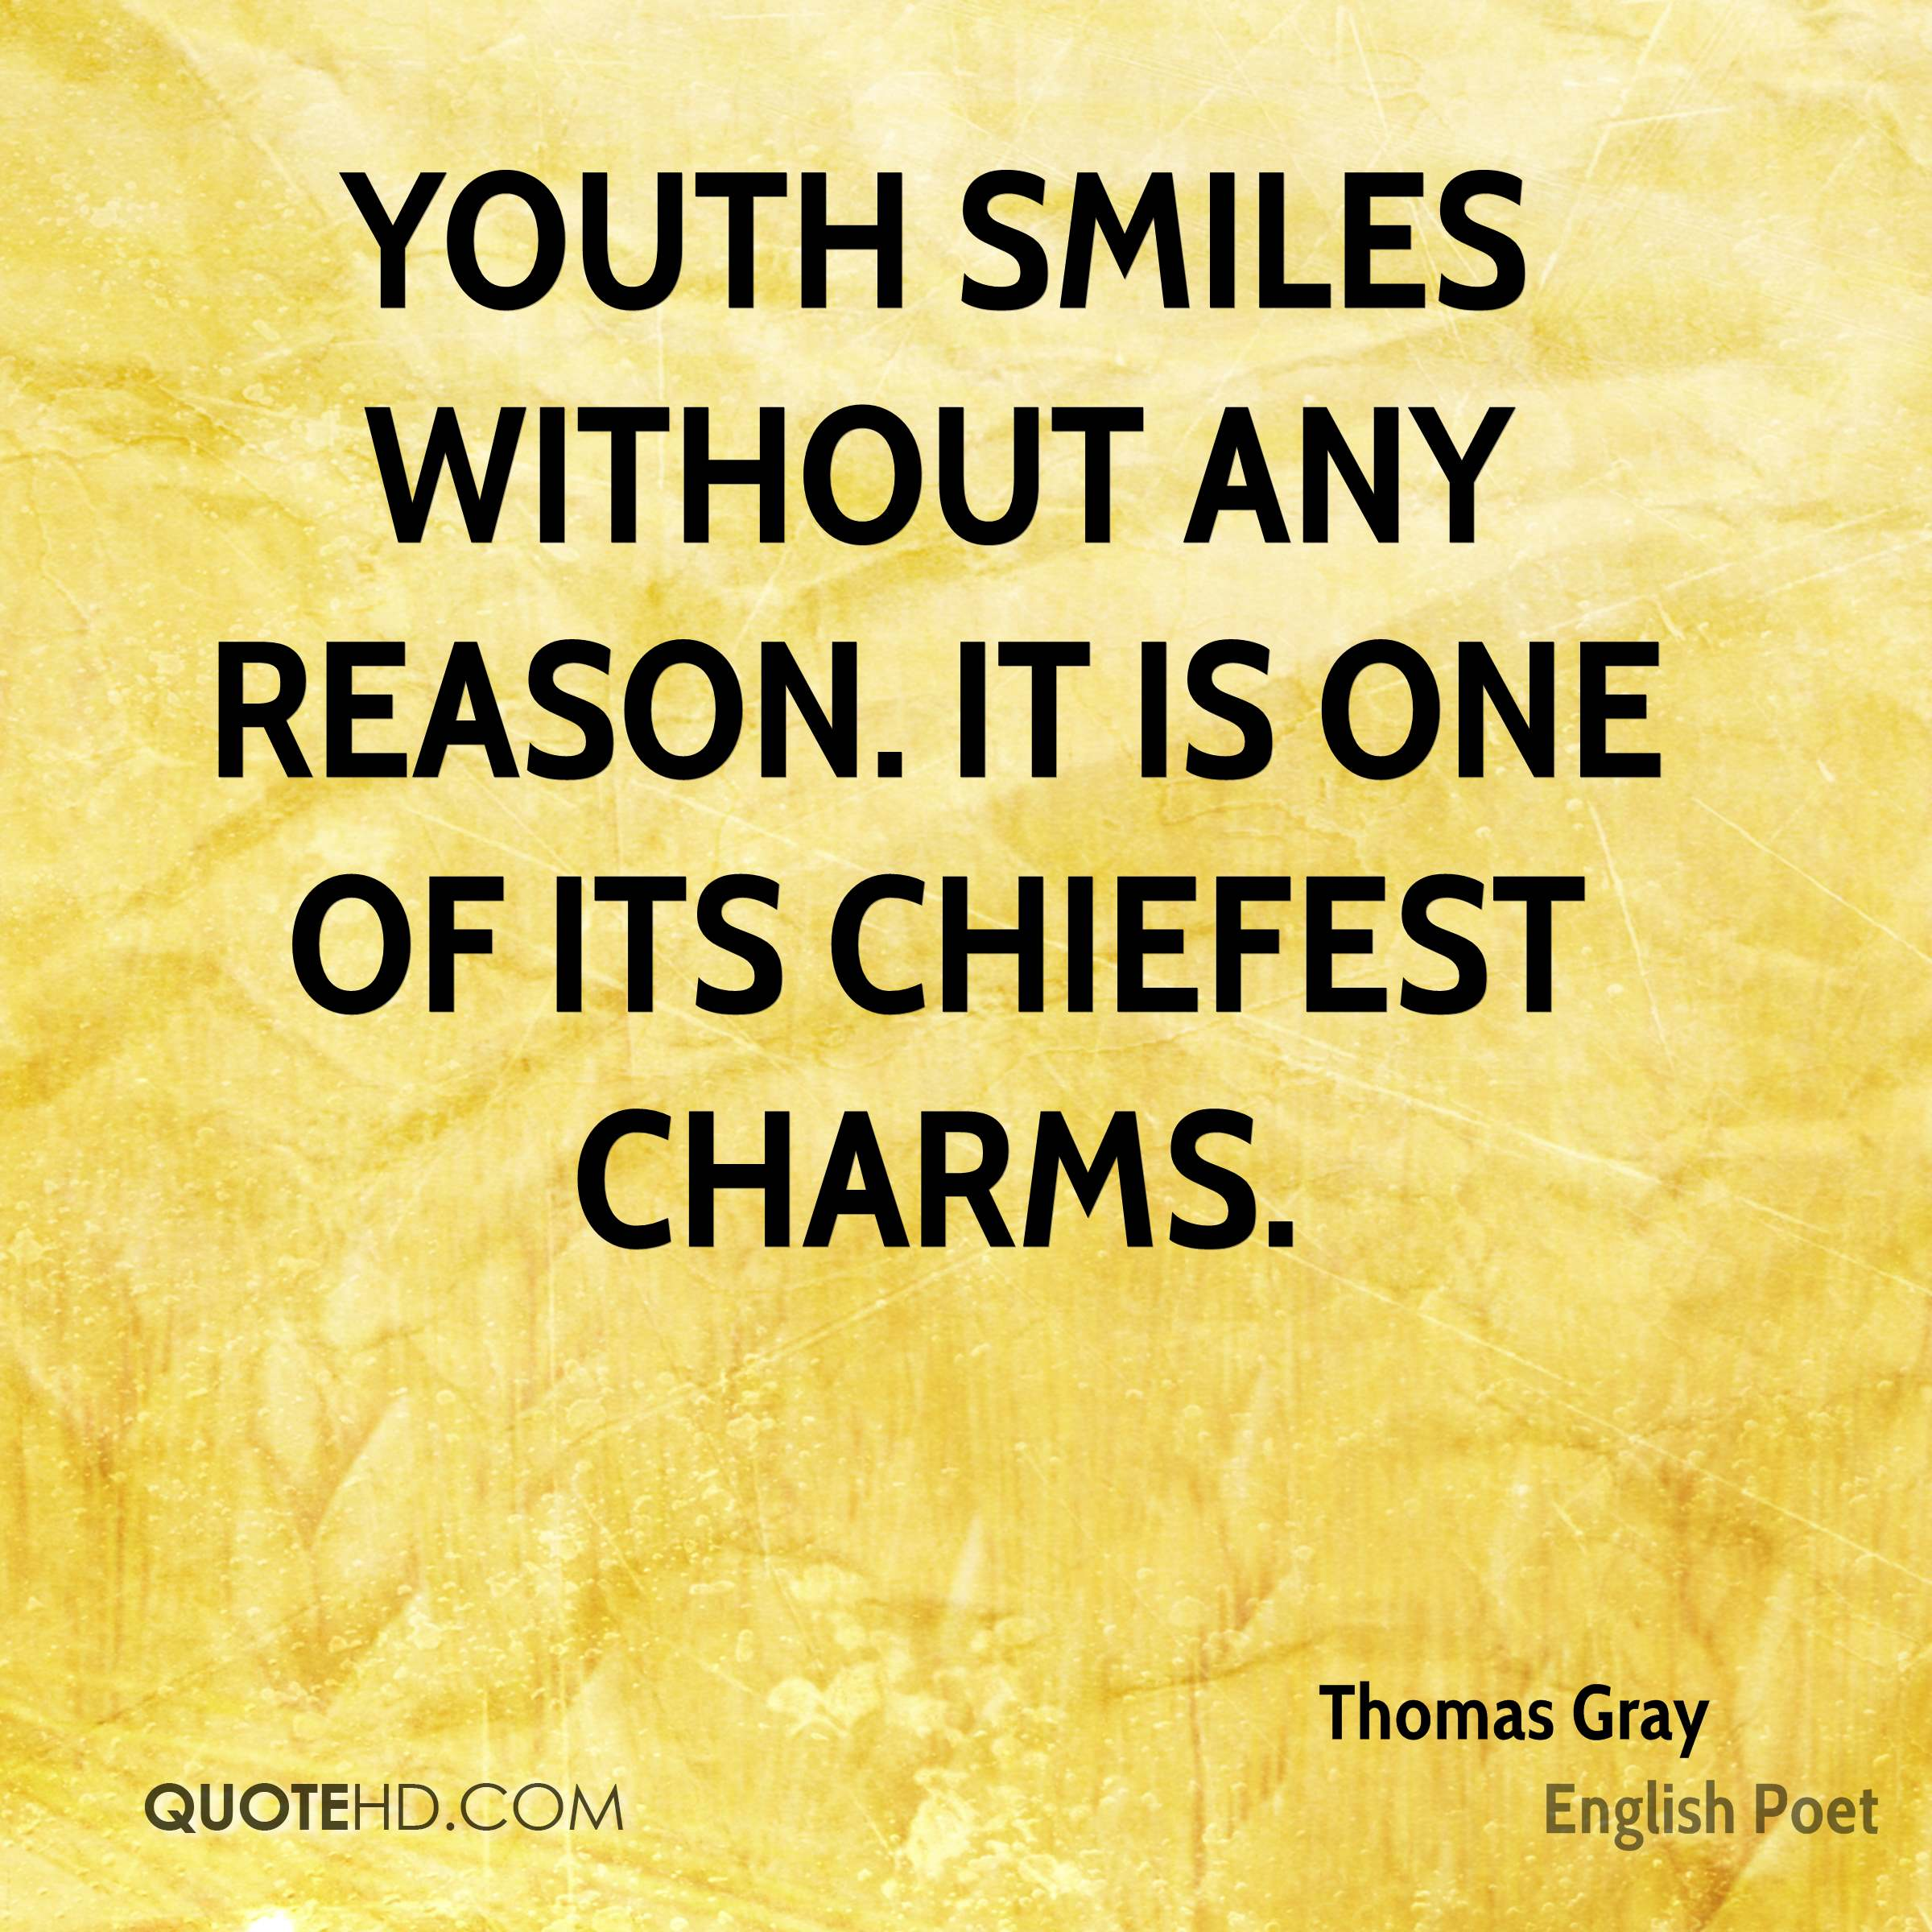 Youth smiles without any reason. It is one of its chiefest charms.